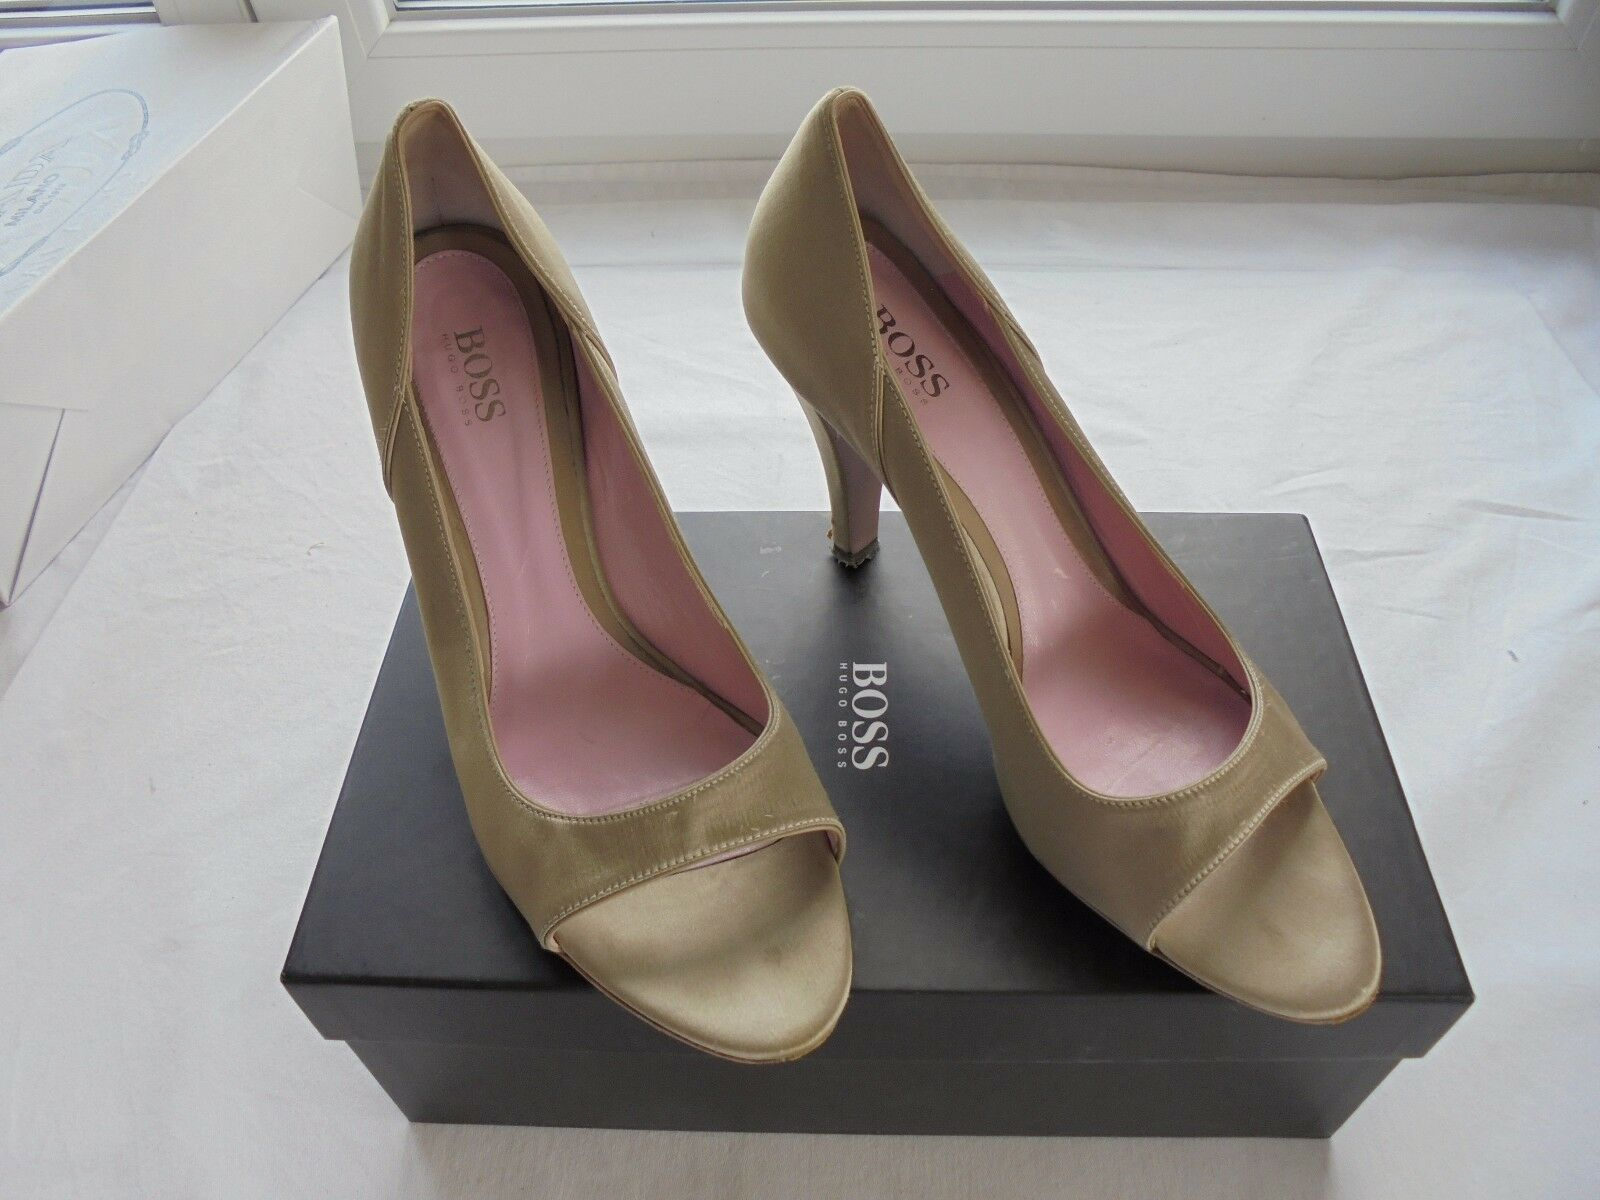 Hugo NP Boss Satin Leder Pumps NP Hugo  High Heel Peep Toes Schuhe 40 40,5 41 f60927